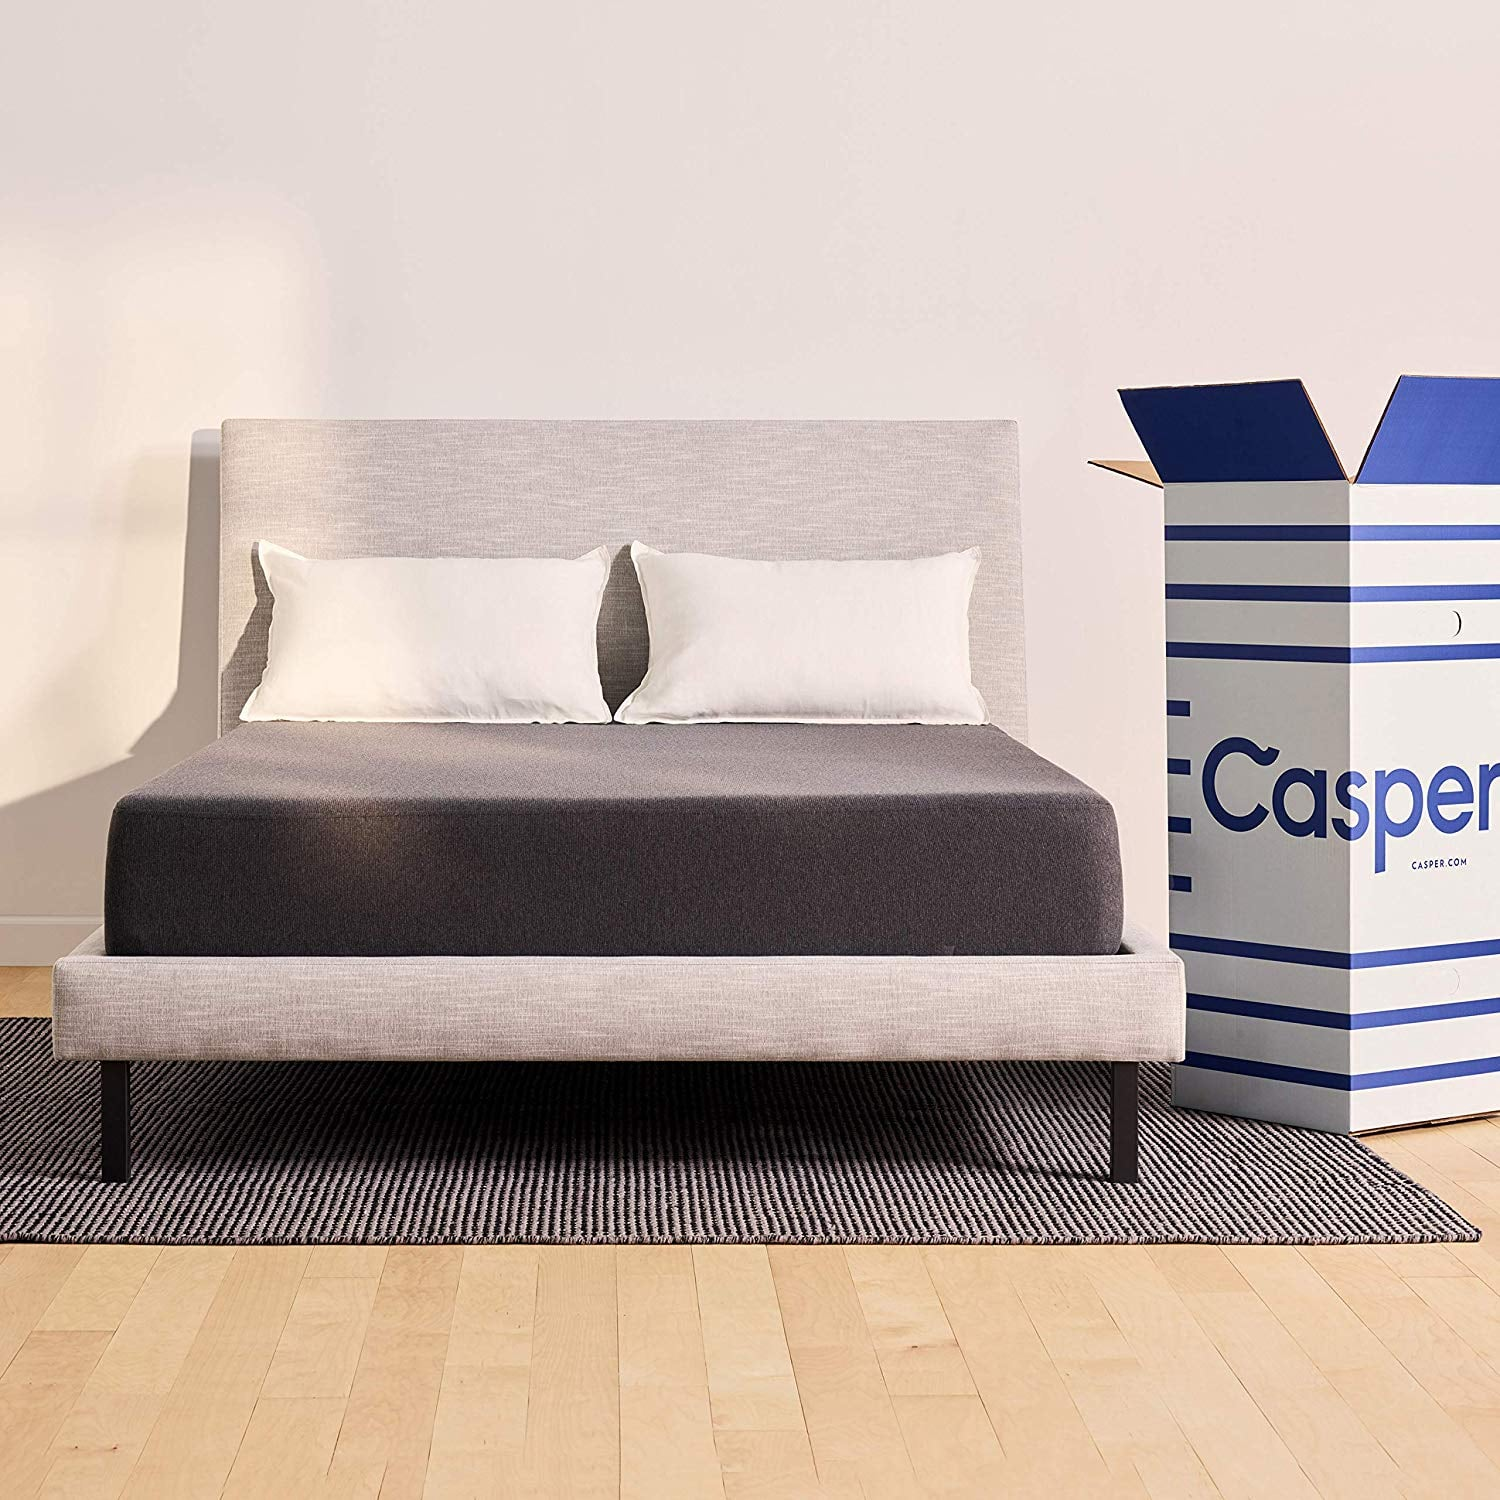 Casper Mattress Black Friday And Cyber Monday Sale 2019 Popsugar Home